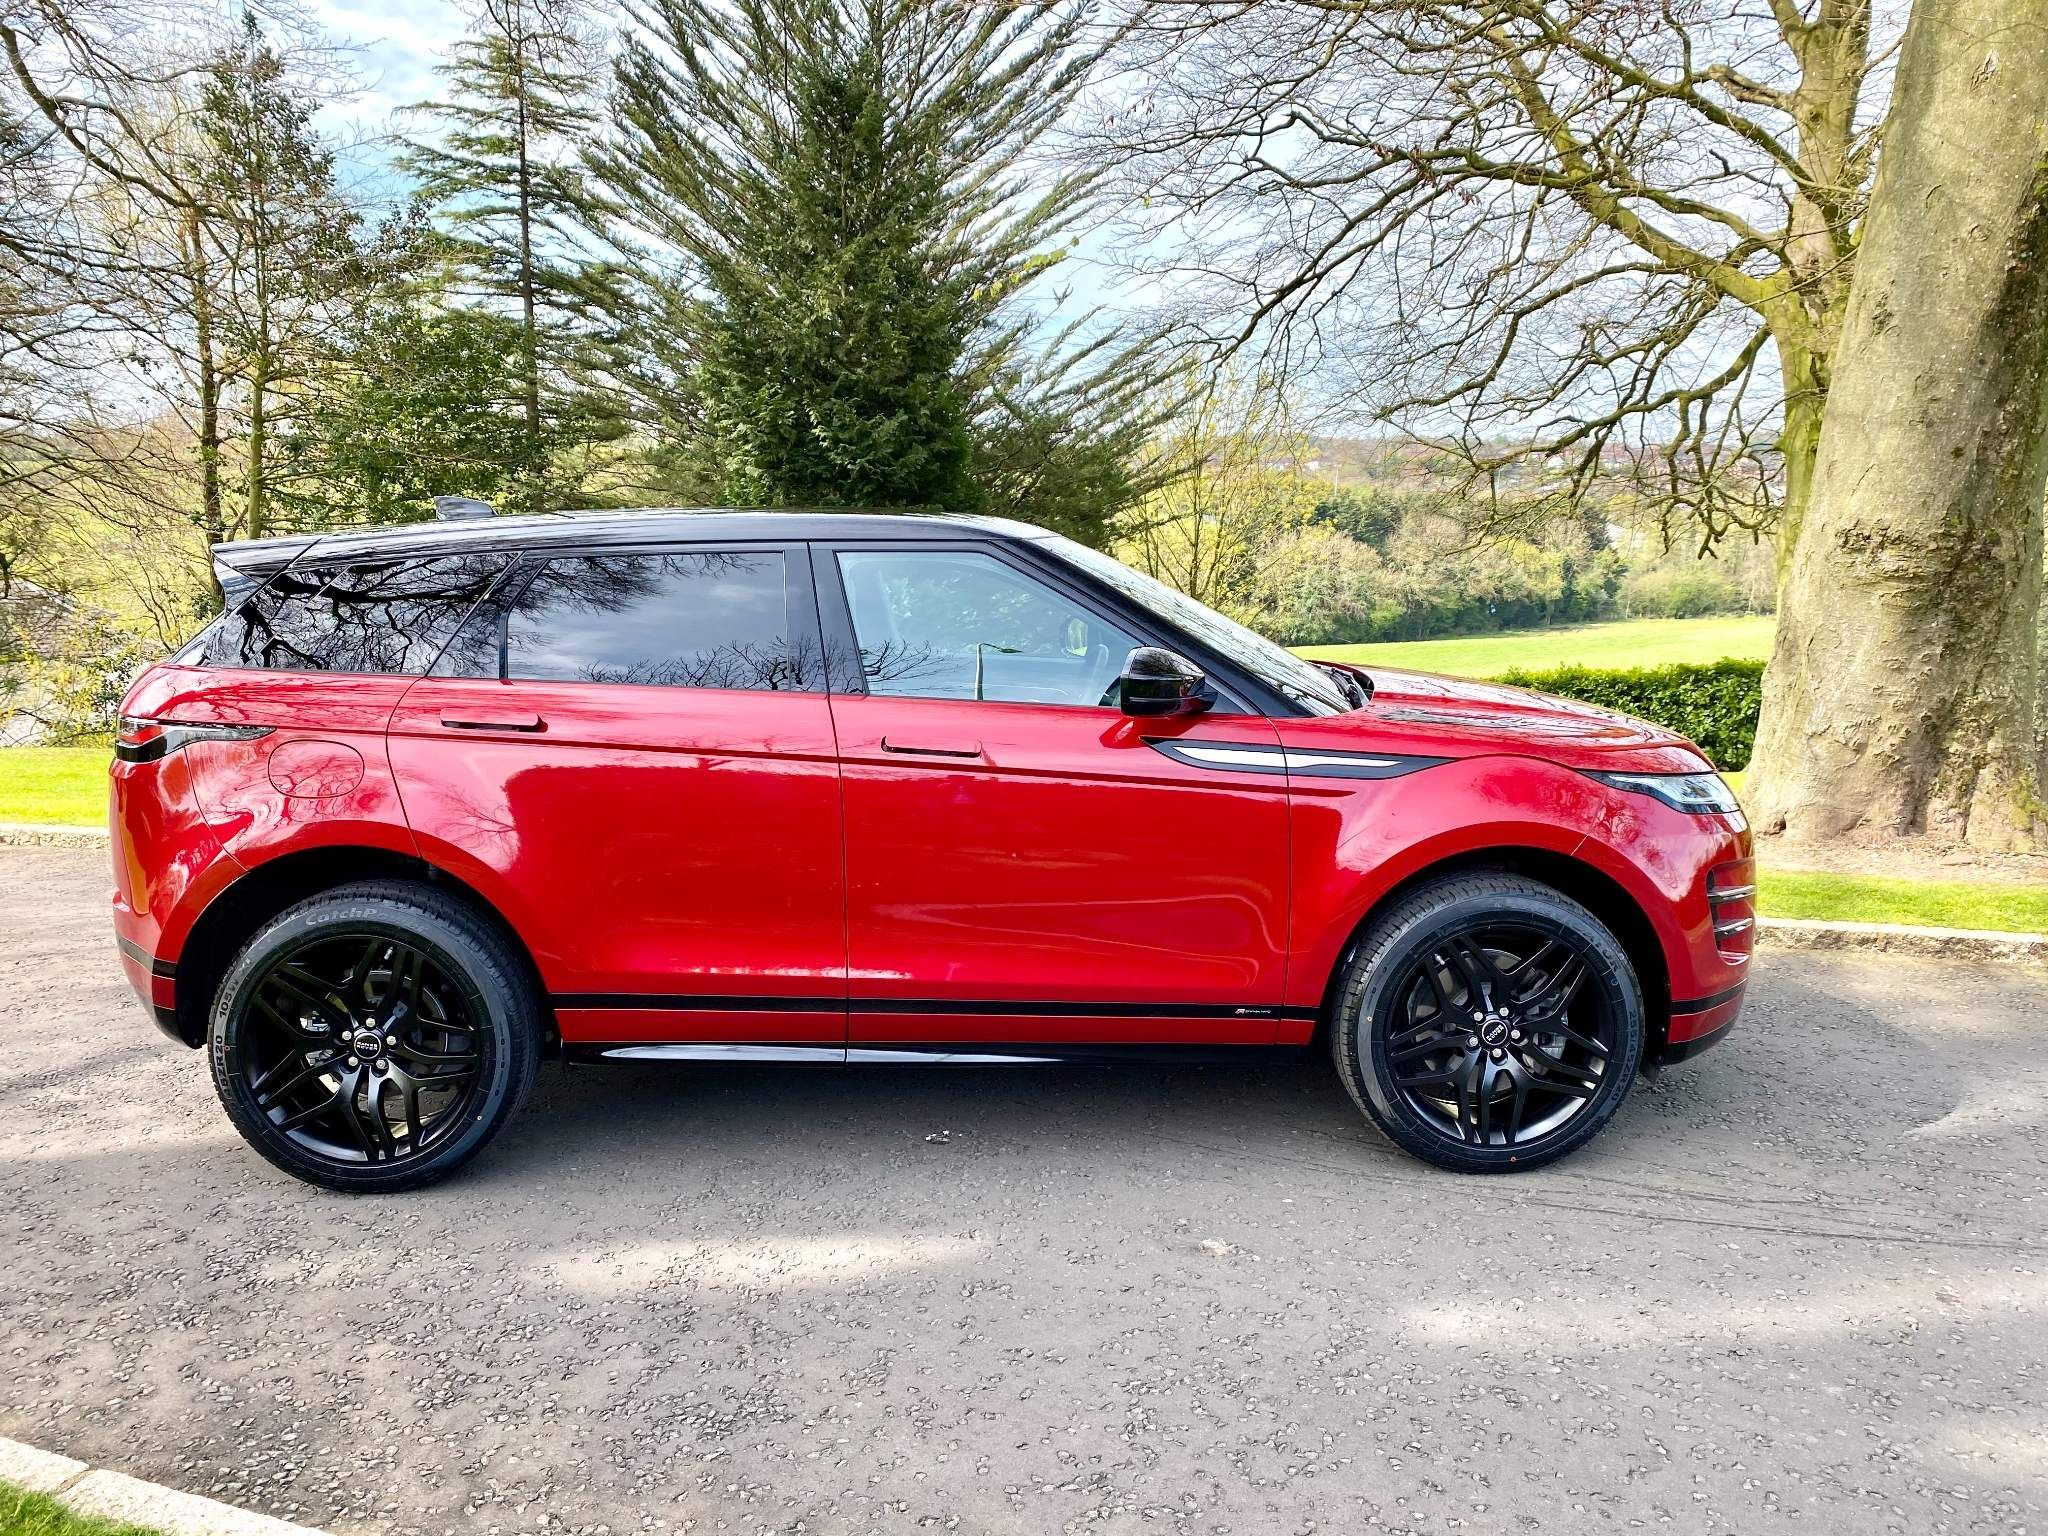 2019 Land Rover Range Rover Evoque 2.0 D180 R-Dynamic S Auto 4WD (s/s) 5dr Diesel Automatic – Moyway Motors Dungannon full